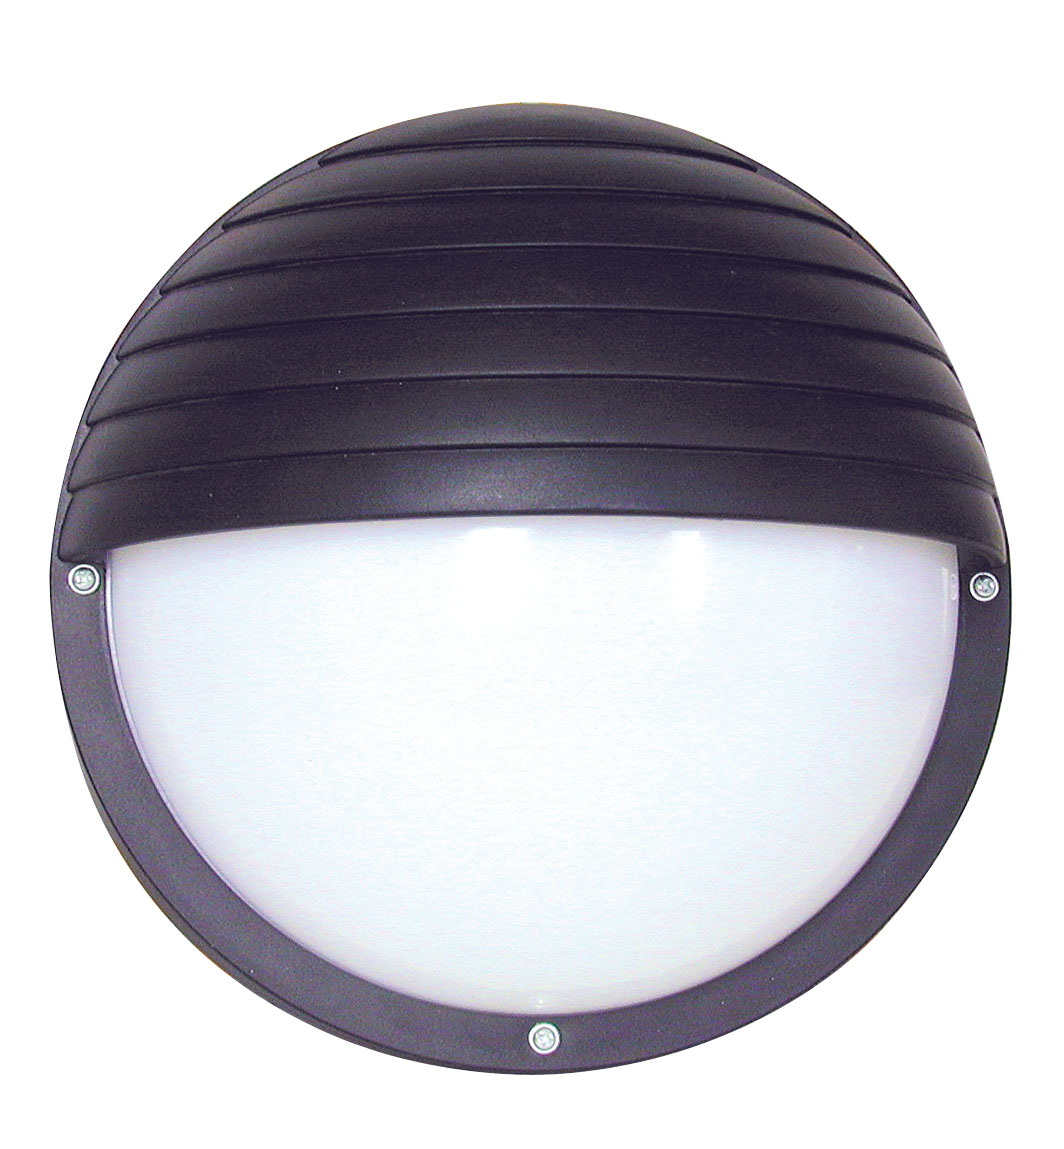 Round Outside Wall Lights : Outdoor lights, round or oval bulkhead for outdoors, outdoor wall lights - The Sparks Direct Blog